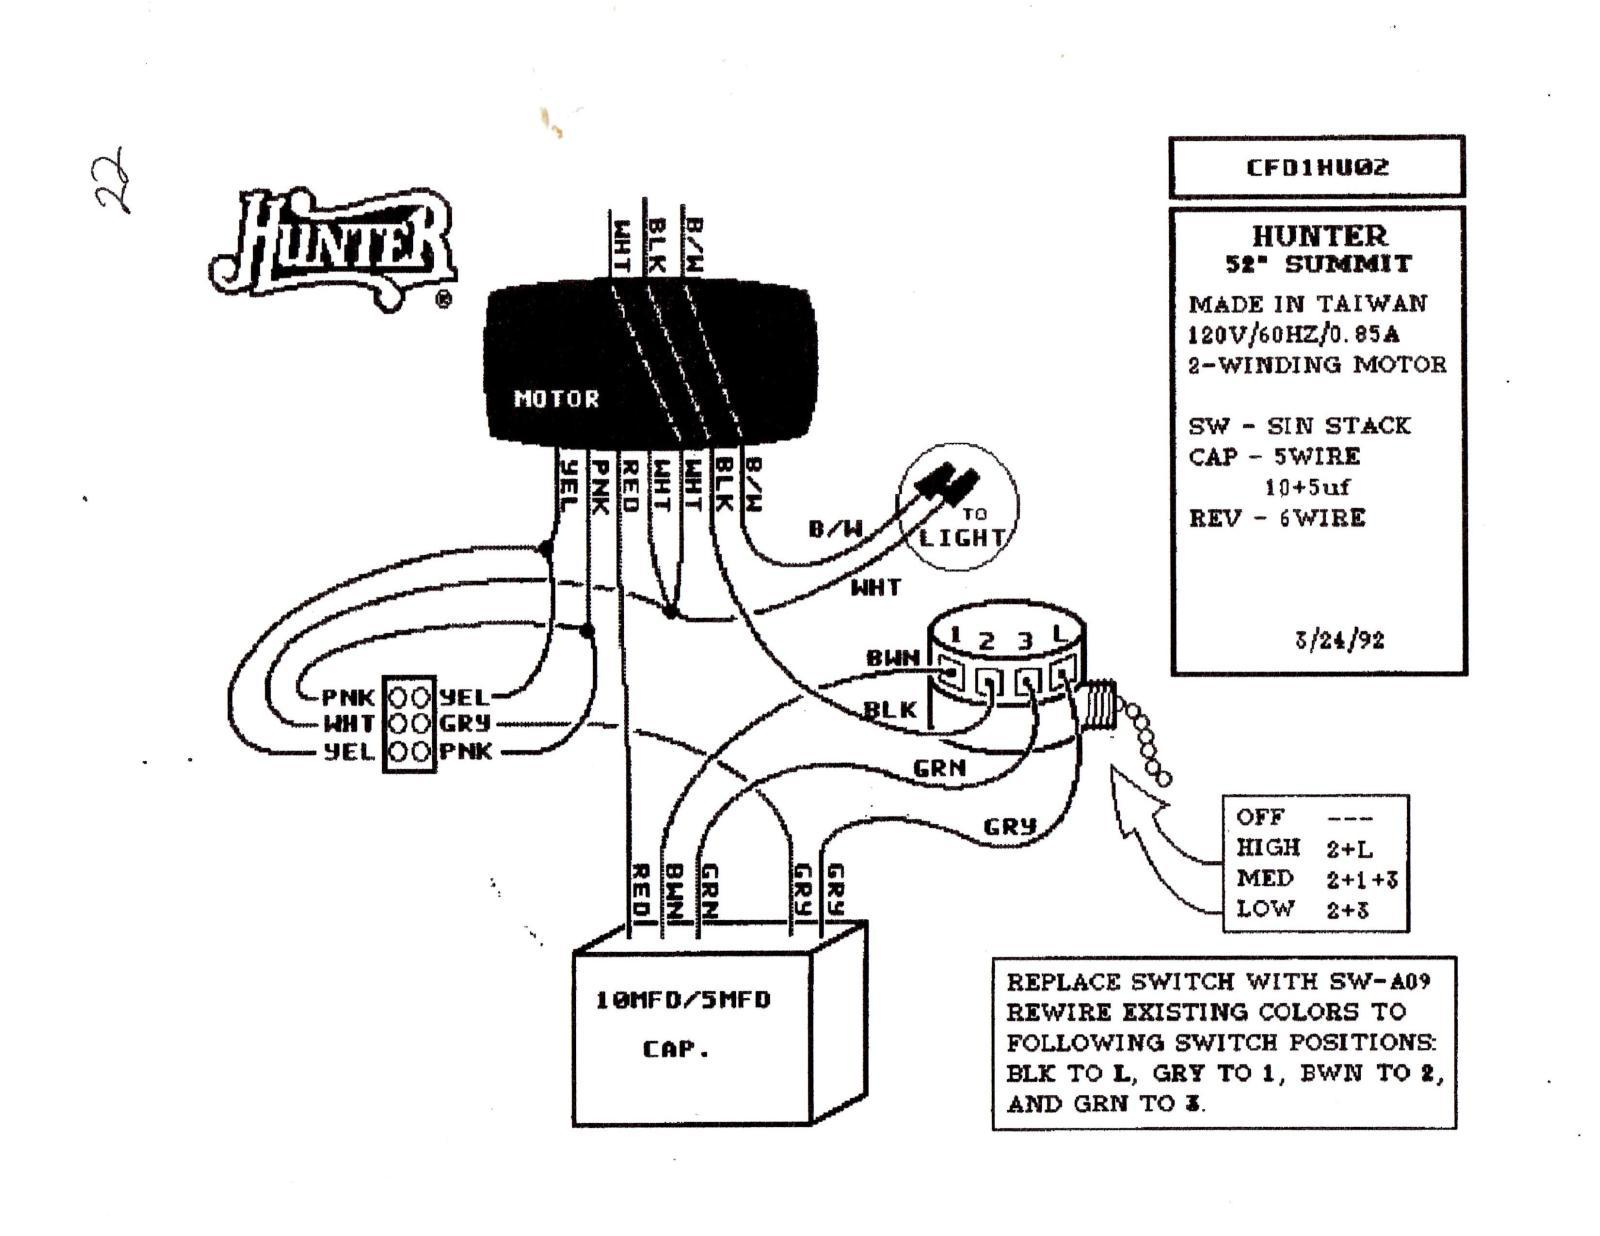 hight resolution of ceiling fan 3 sd motor wiring diagram wiring libraryceiling fan 3 sd motor wiring diagram